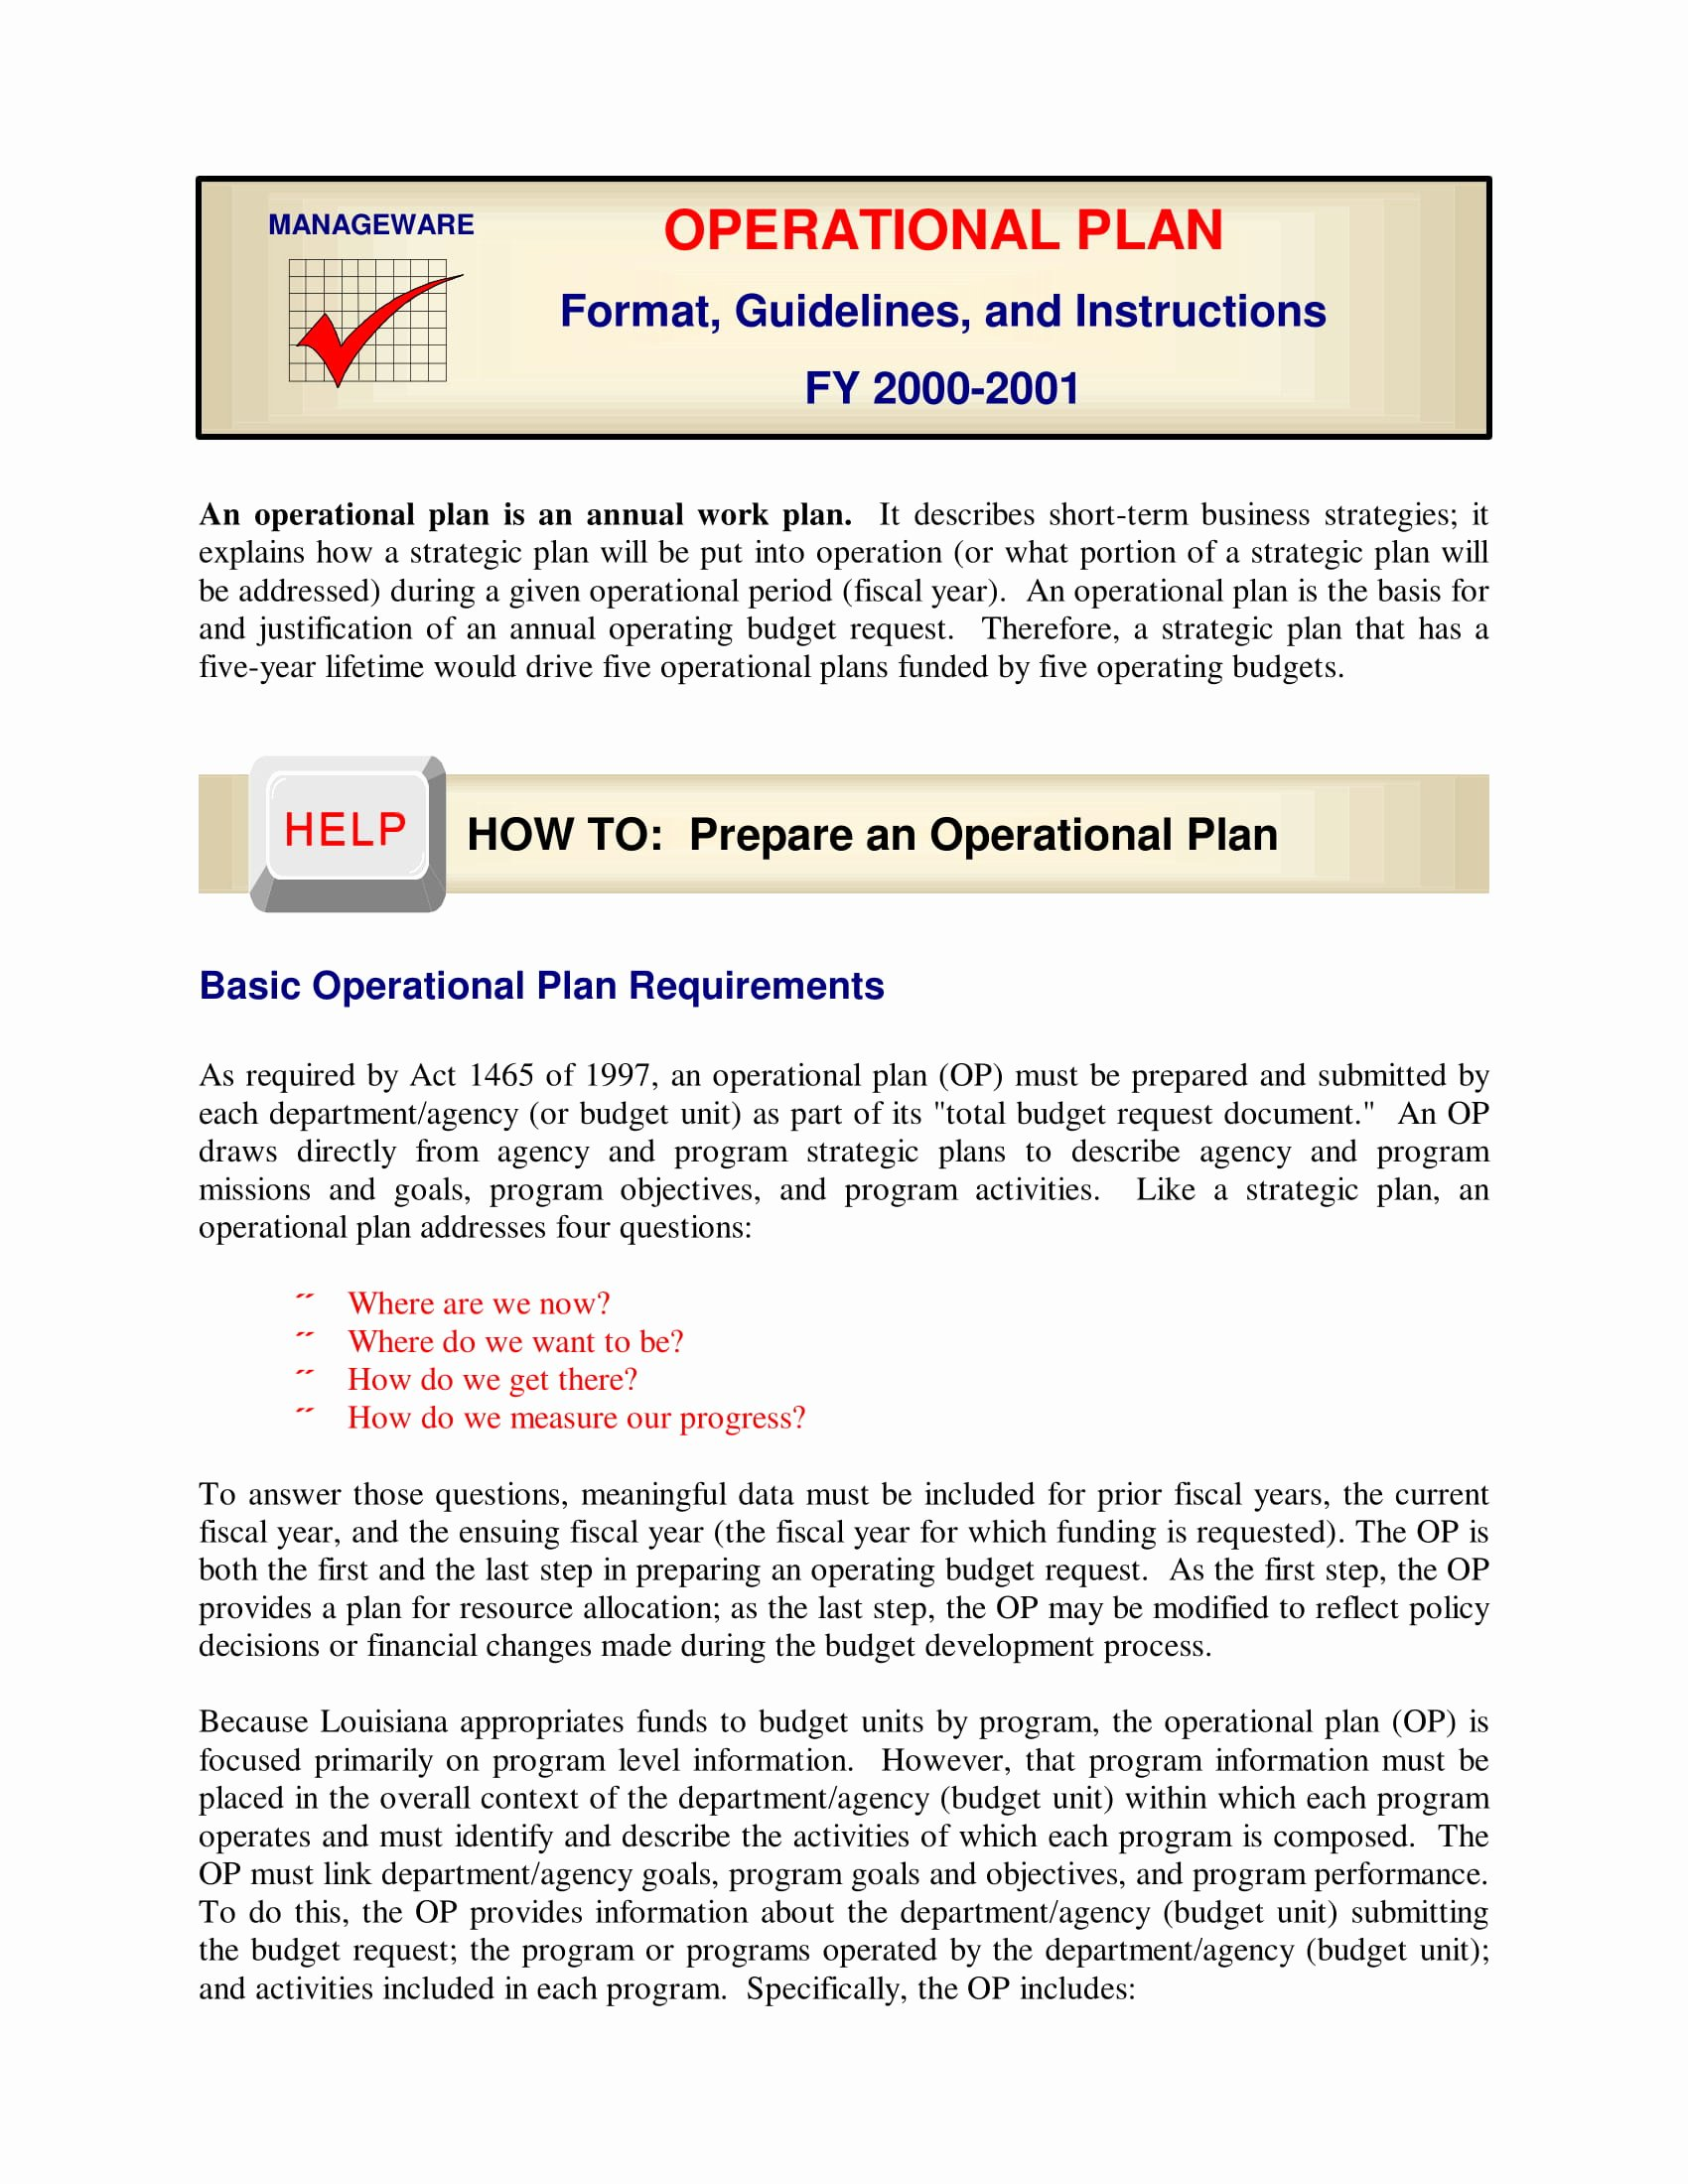 Business Operational Plan Template Inspirational 12 Operations Management Plan Template Examples Pdf